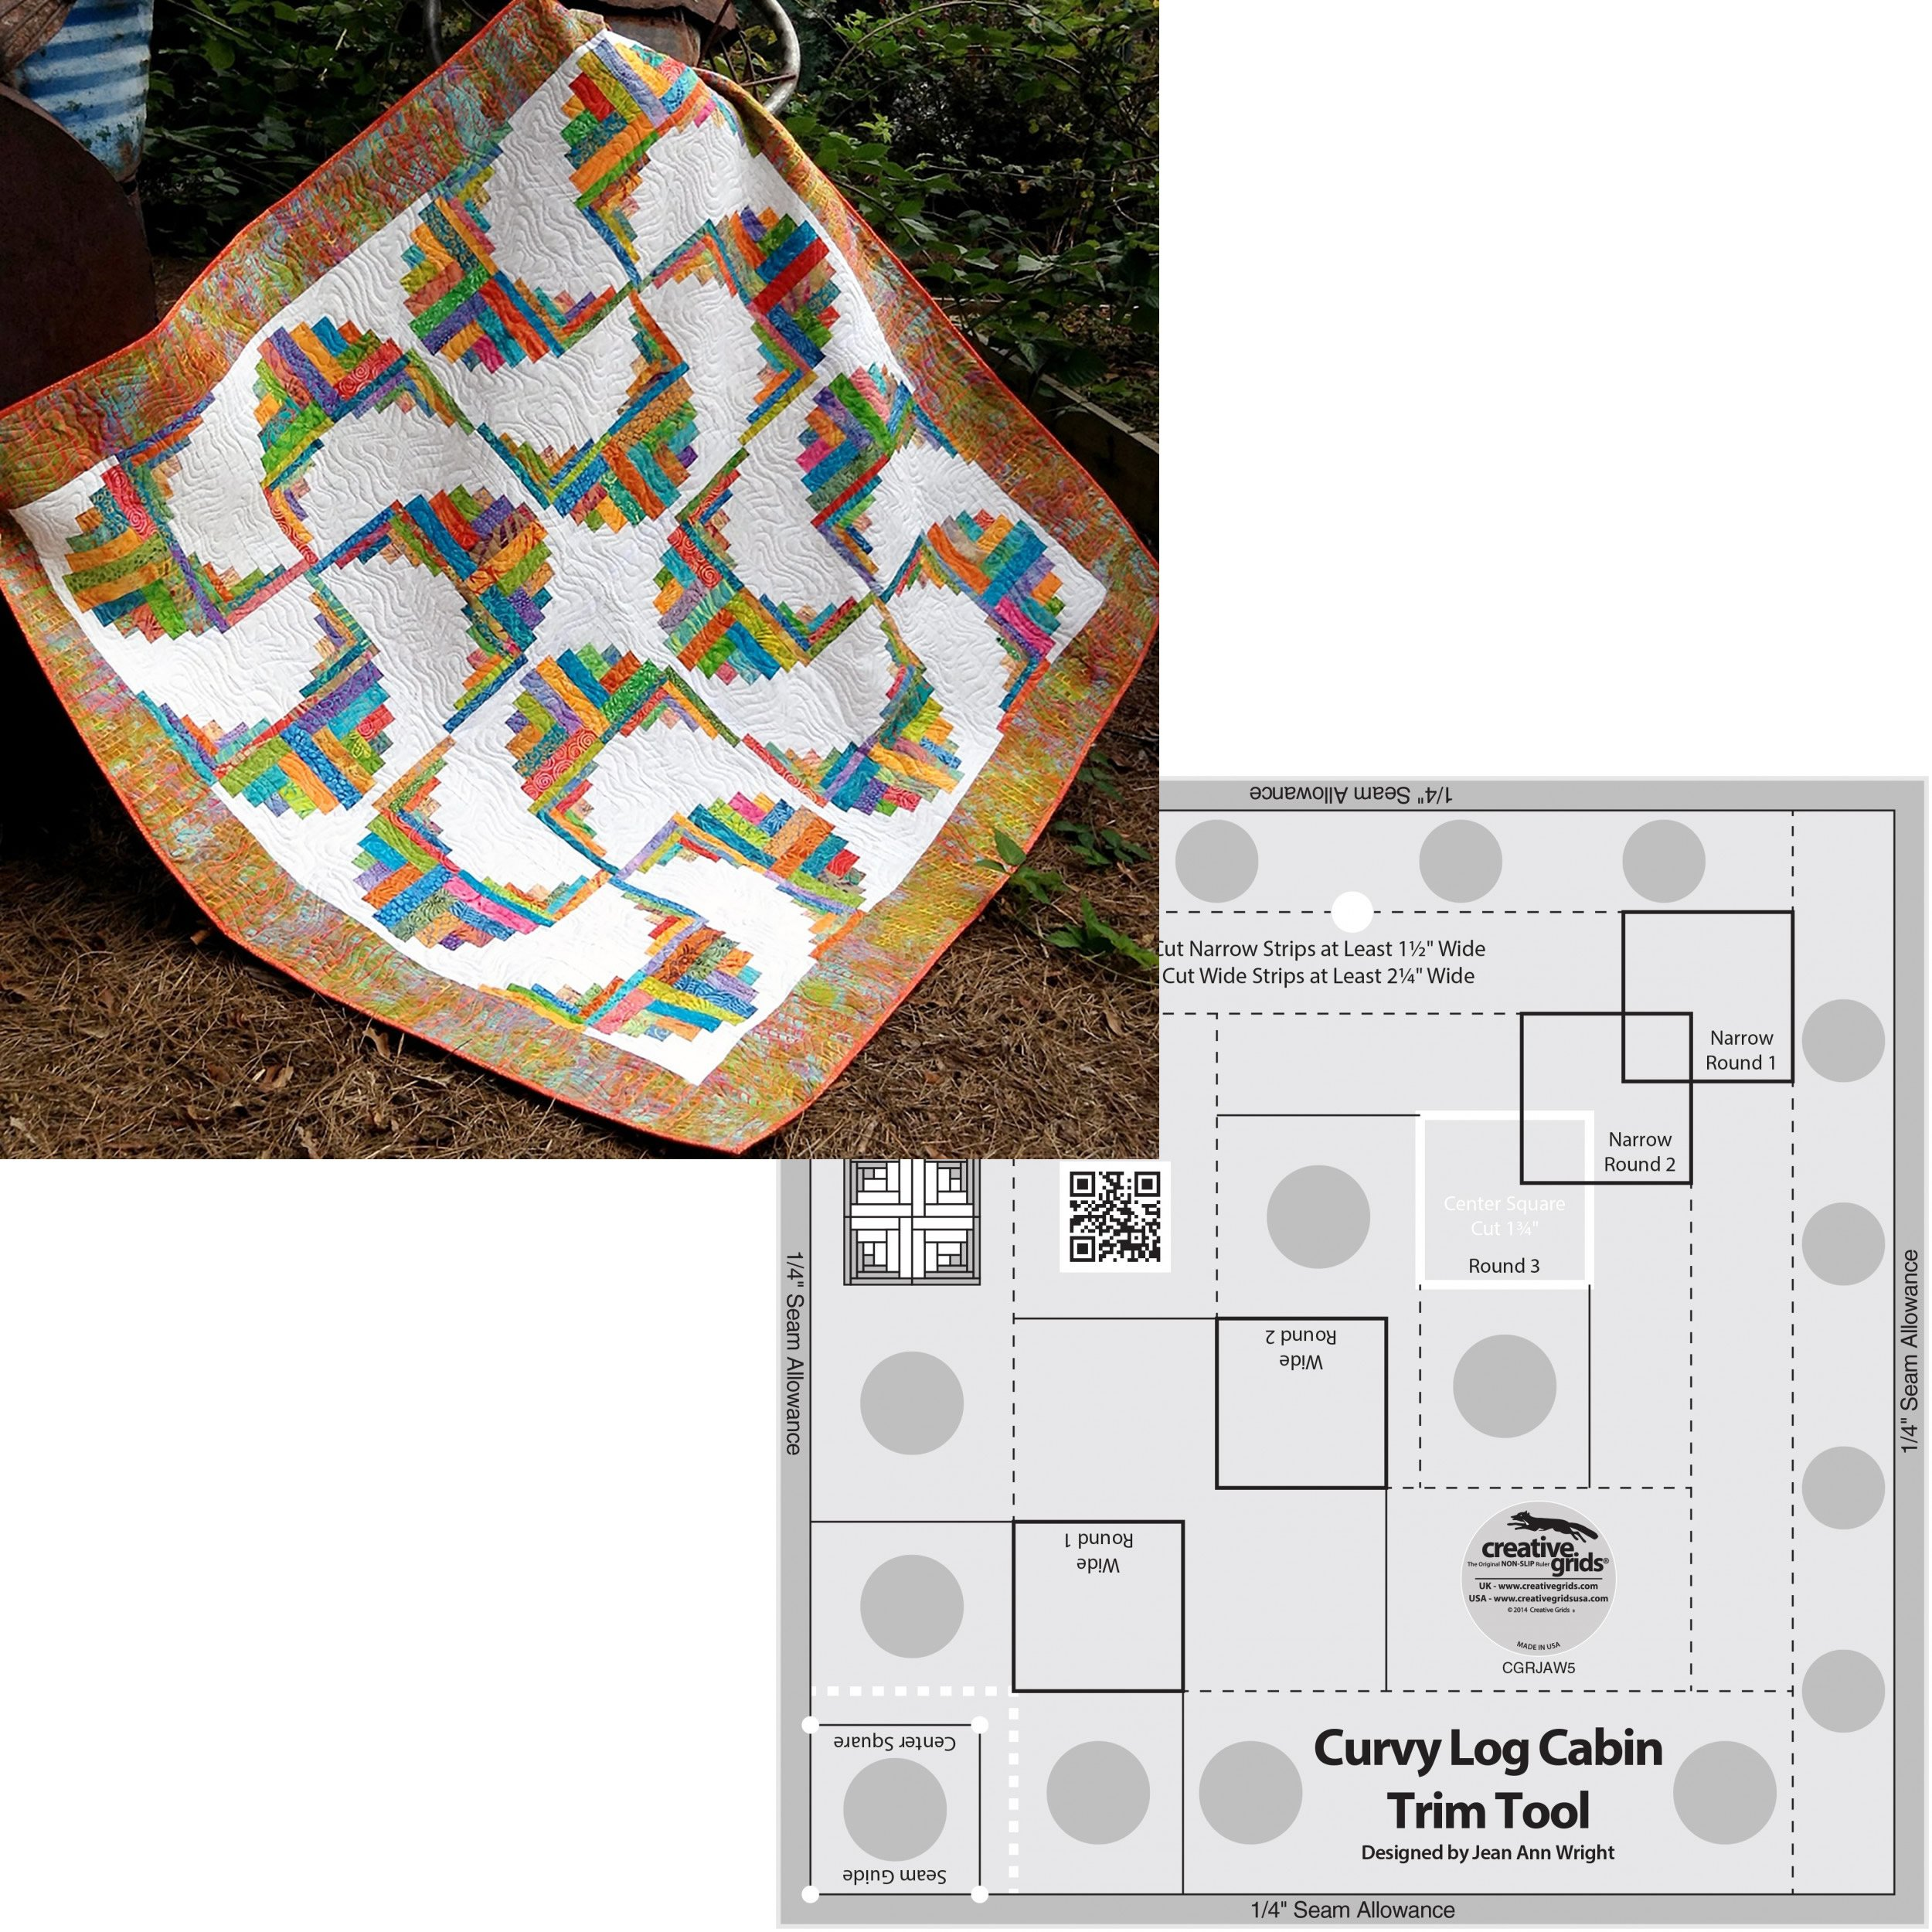 Bundle of Creative Grids Curvy Log Cabin Trim Tool 8in Finished Blocks and Cut Loose Press Rainbow Swirls Curvy Log Cabin Quilt Pattern by Creative Grids USA, and Cut Loose Press